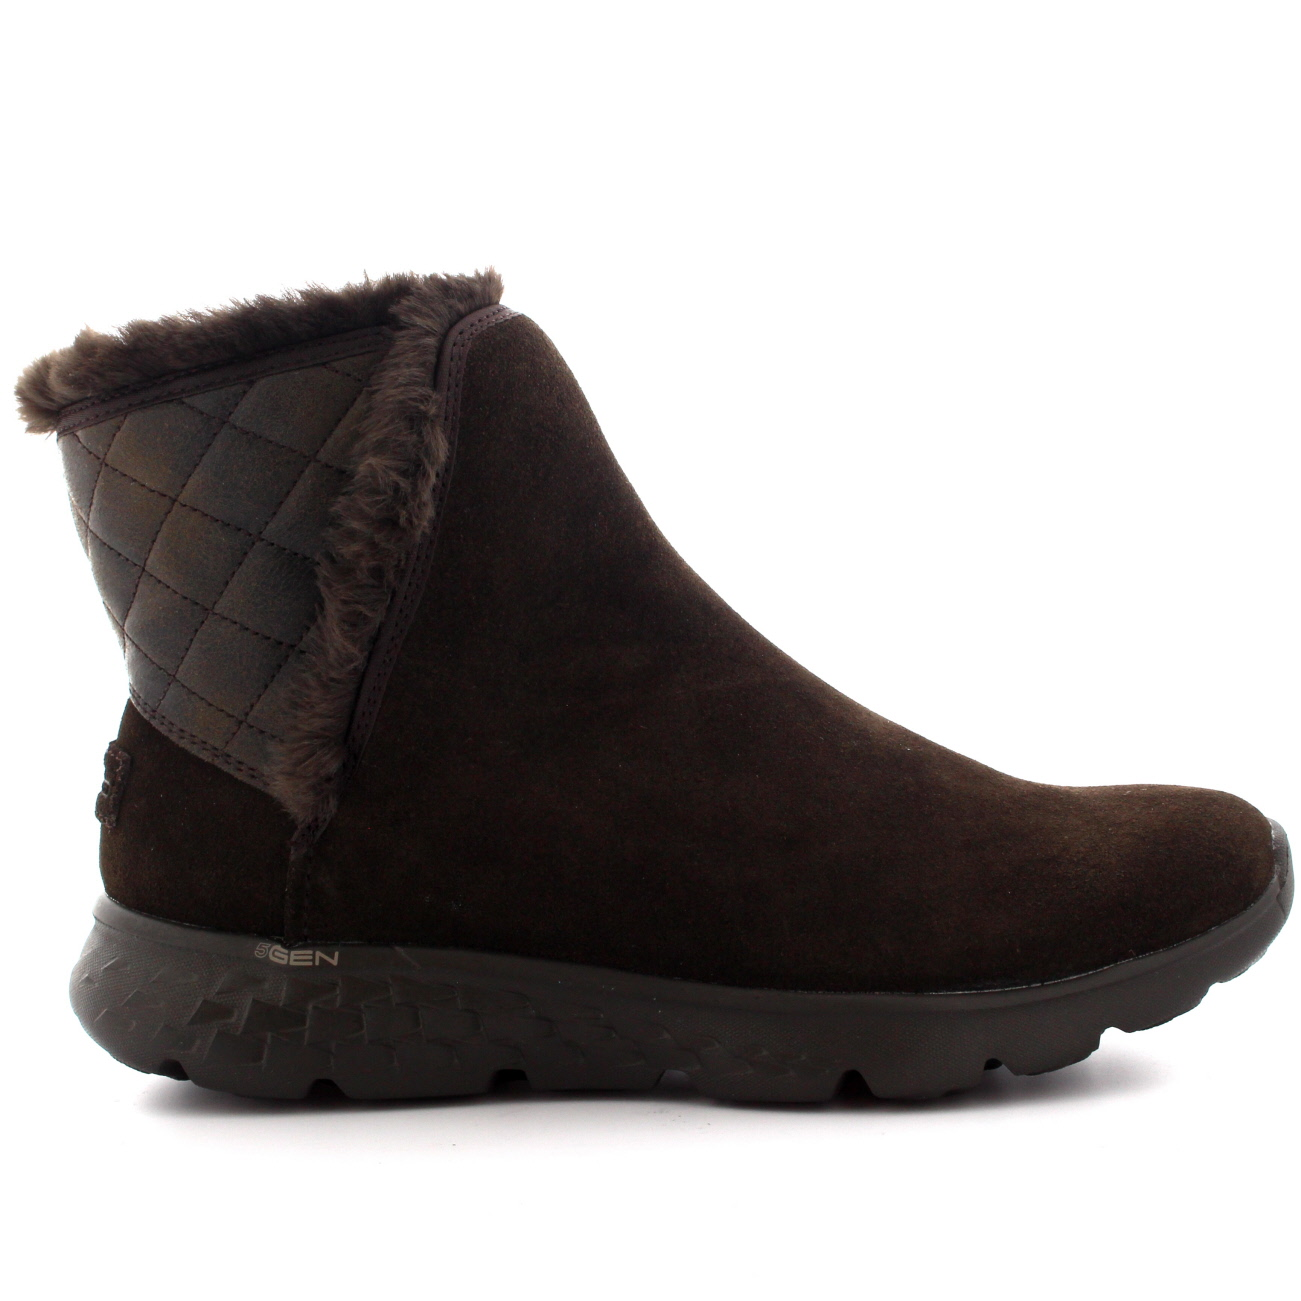 d5a52c7257 Ladies Skechers On The Go 400 Cozies Casual Warm Faux Fur Lined ...